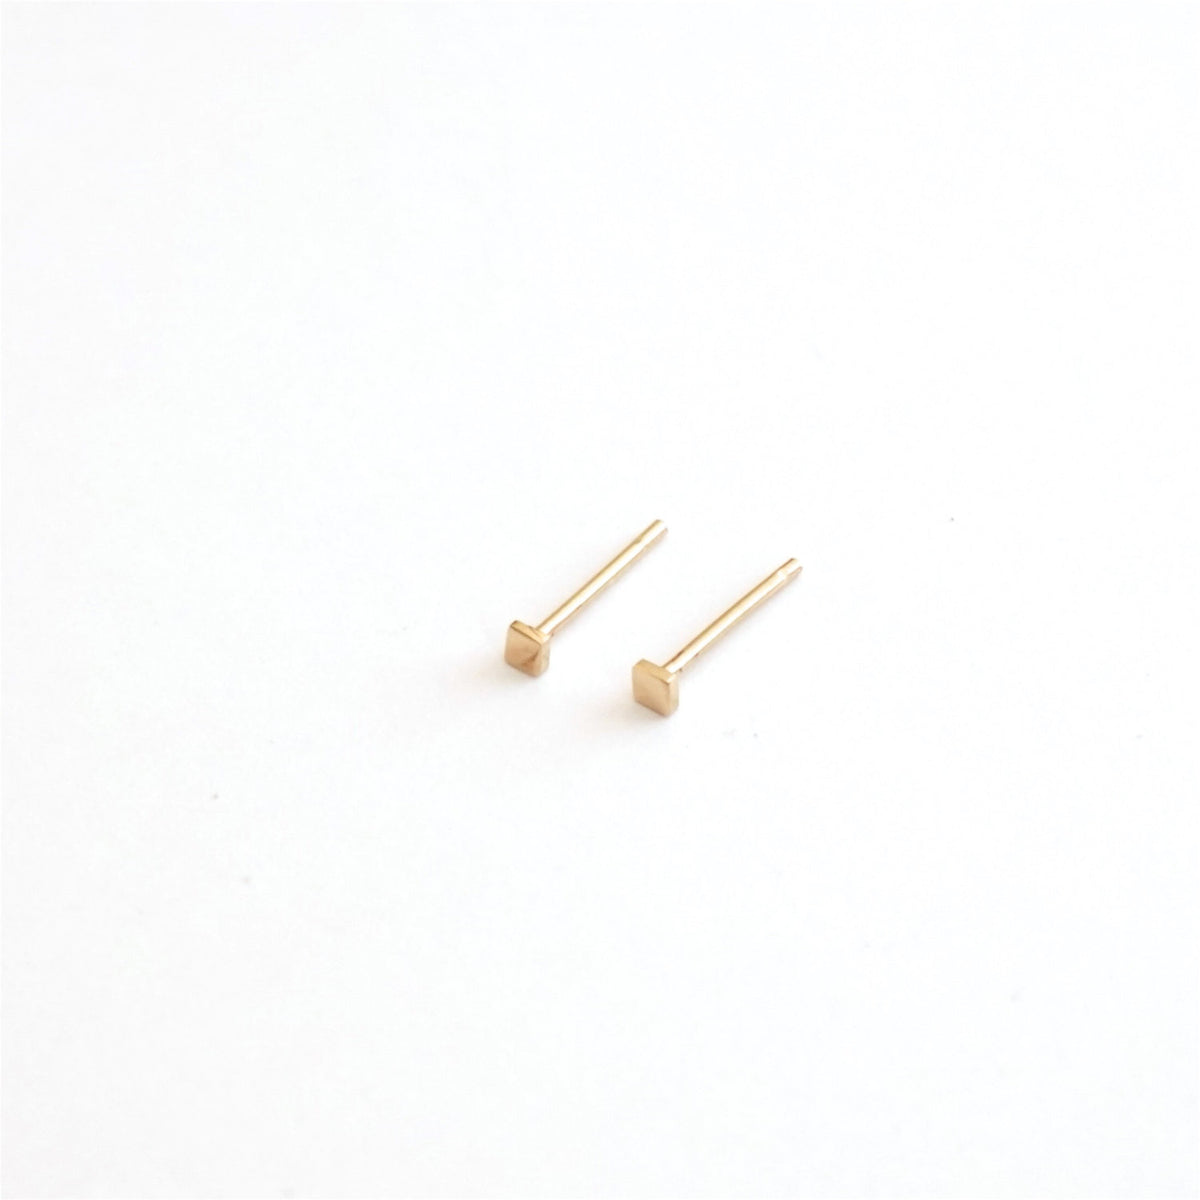 Contemporary Classic Hand-Made Square 14K Gold Stud Earrings  -  0151 - Virginia Wynne Designs